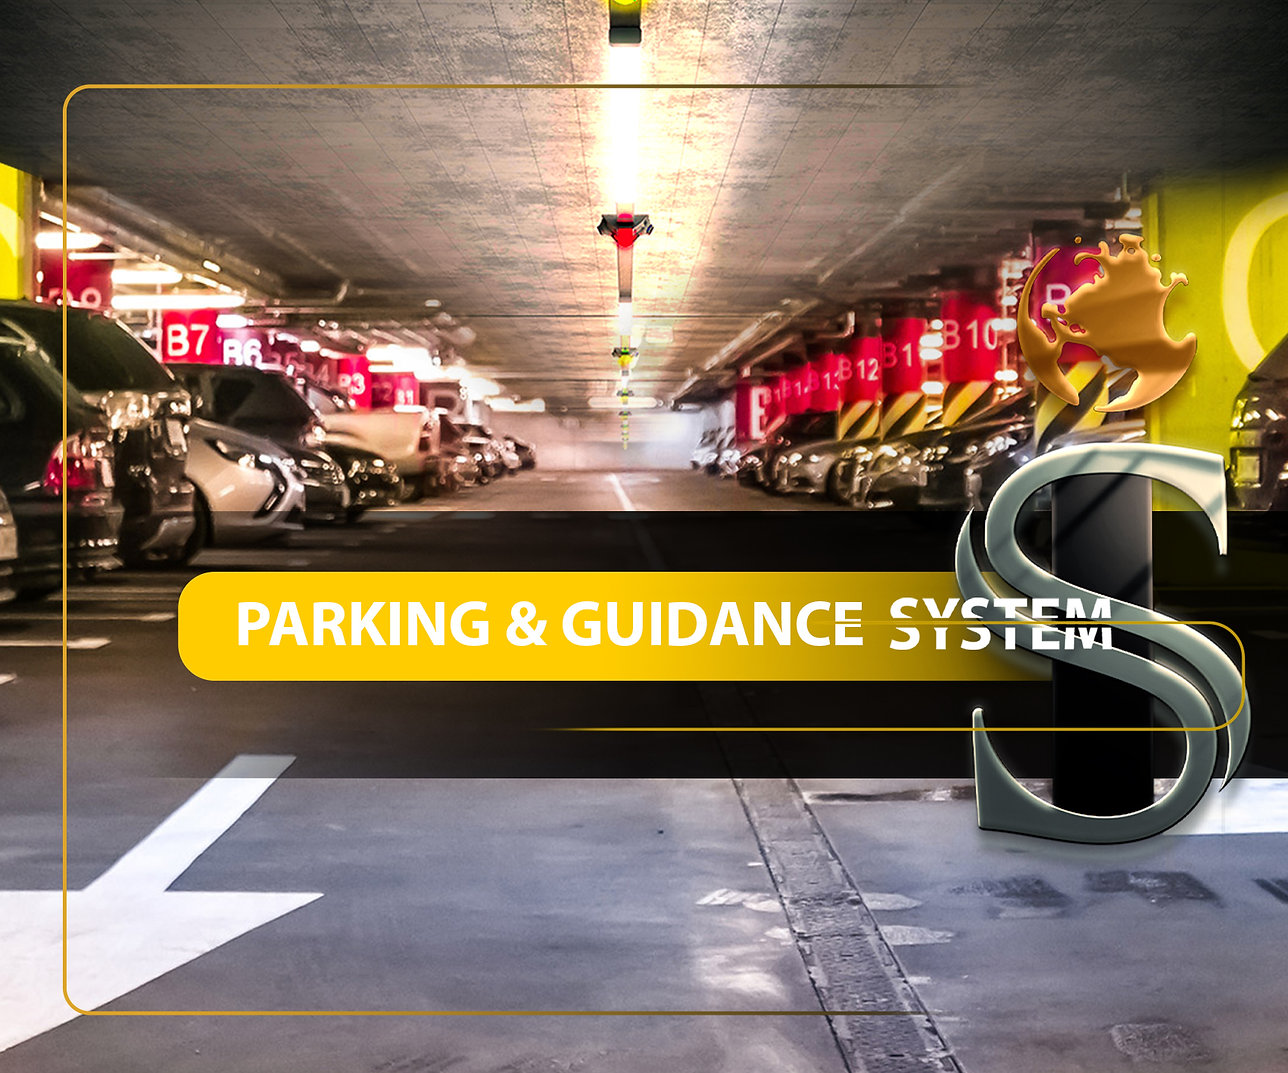 parking and guidance system.jpg